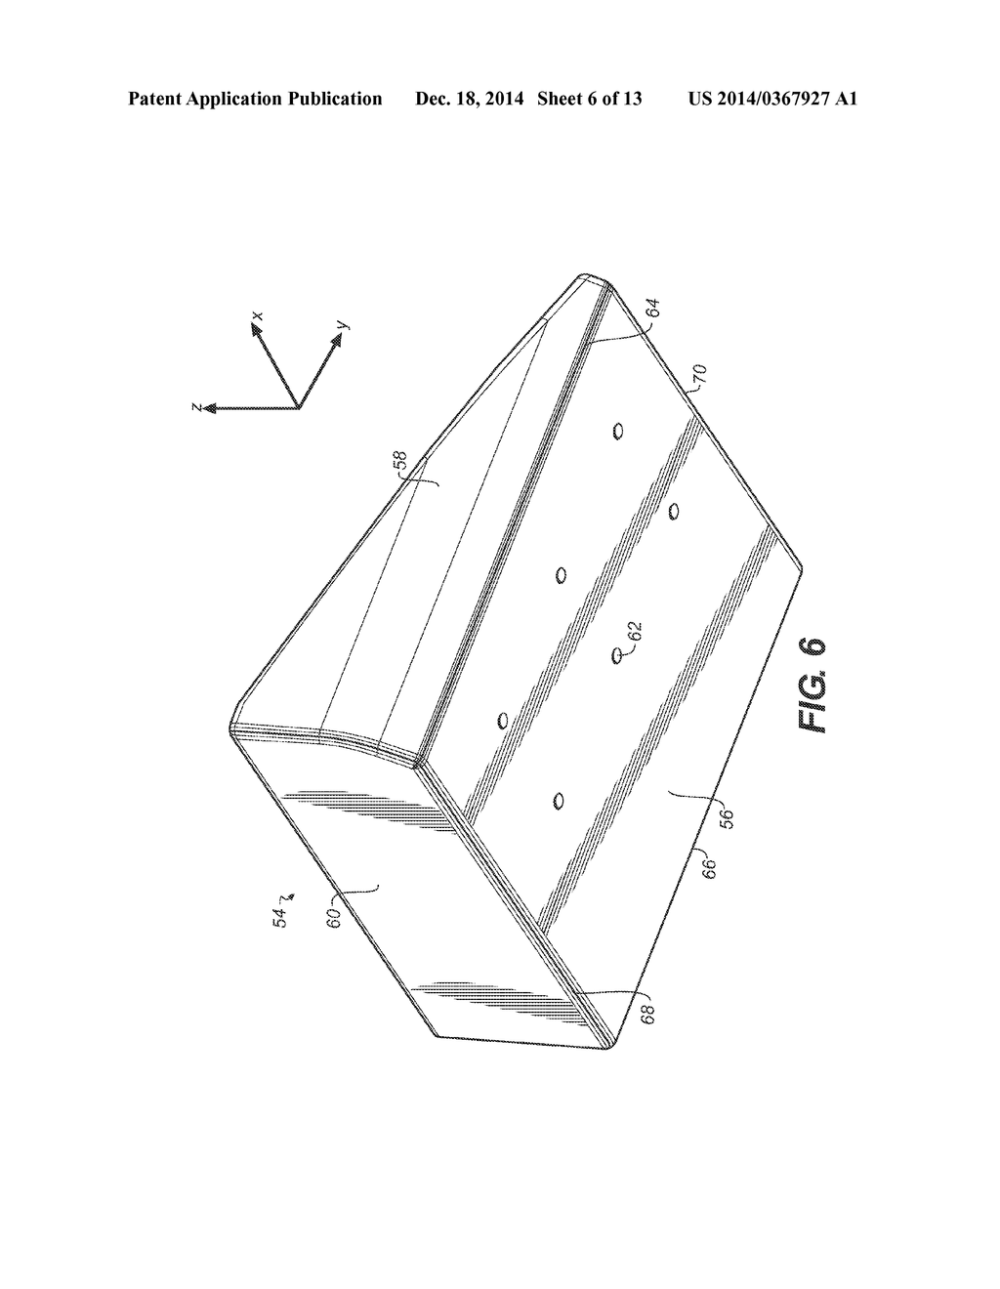 medium resolution of apparatus and method for sealing a dock leveler assembly diagram schematic and image 07